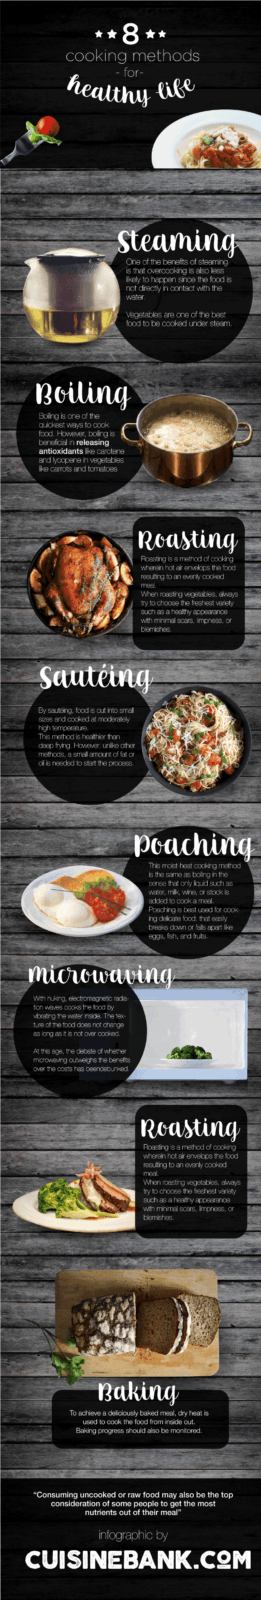 Top 8 Cooking Methods For Healthy Living Infographic